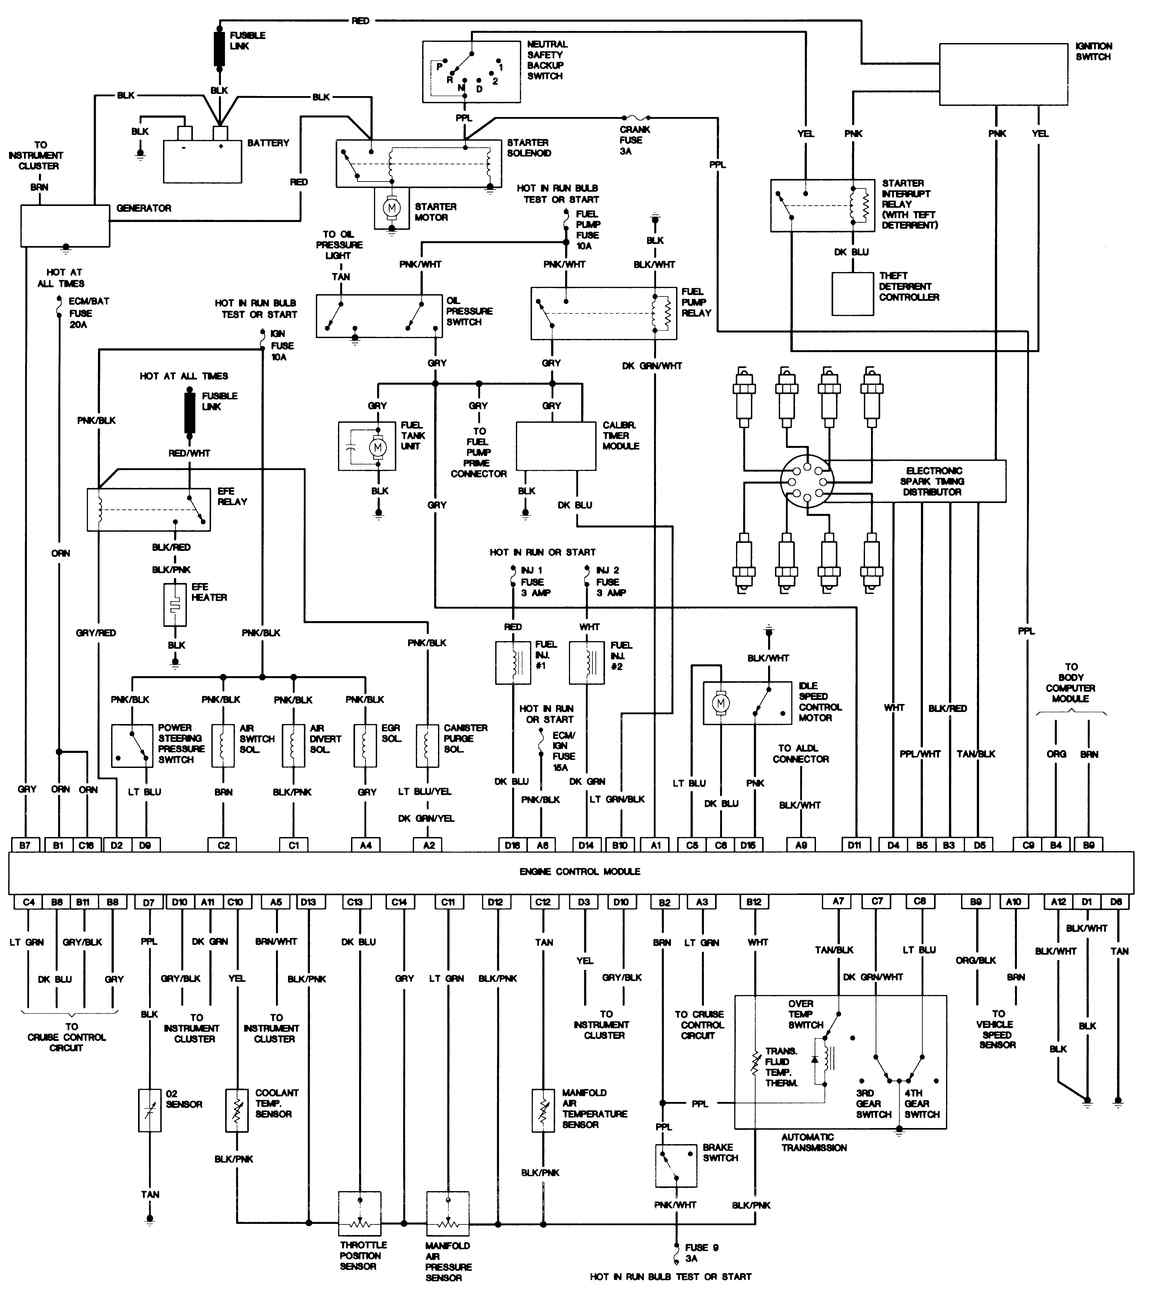 DIAGRAM] Stereo Wiring Diagram For 2001 Cadillac Deville FULL Version HD  Quality Cadillac Deville - DIAGRAMMASAS.SANITACALABRIA.ITsanitacalabria.it